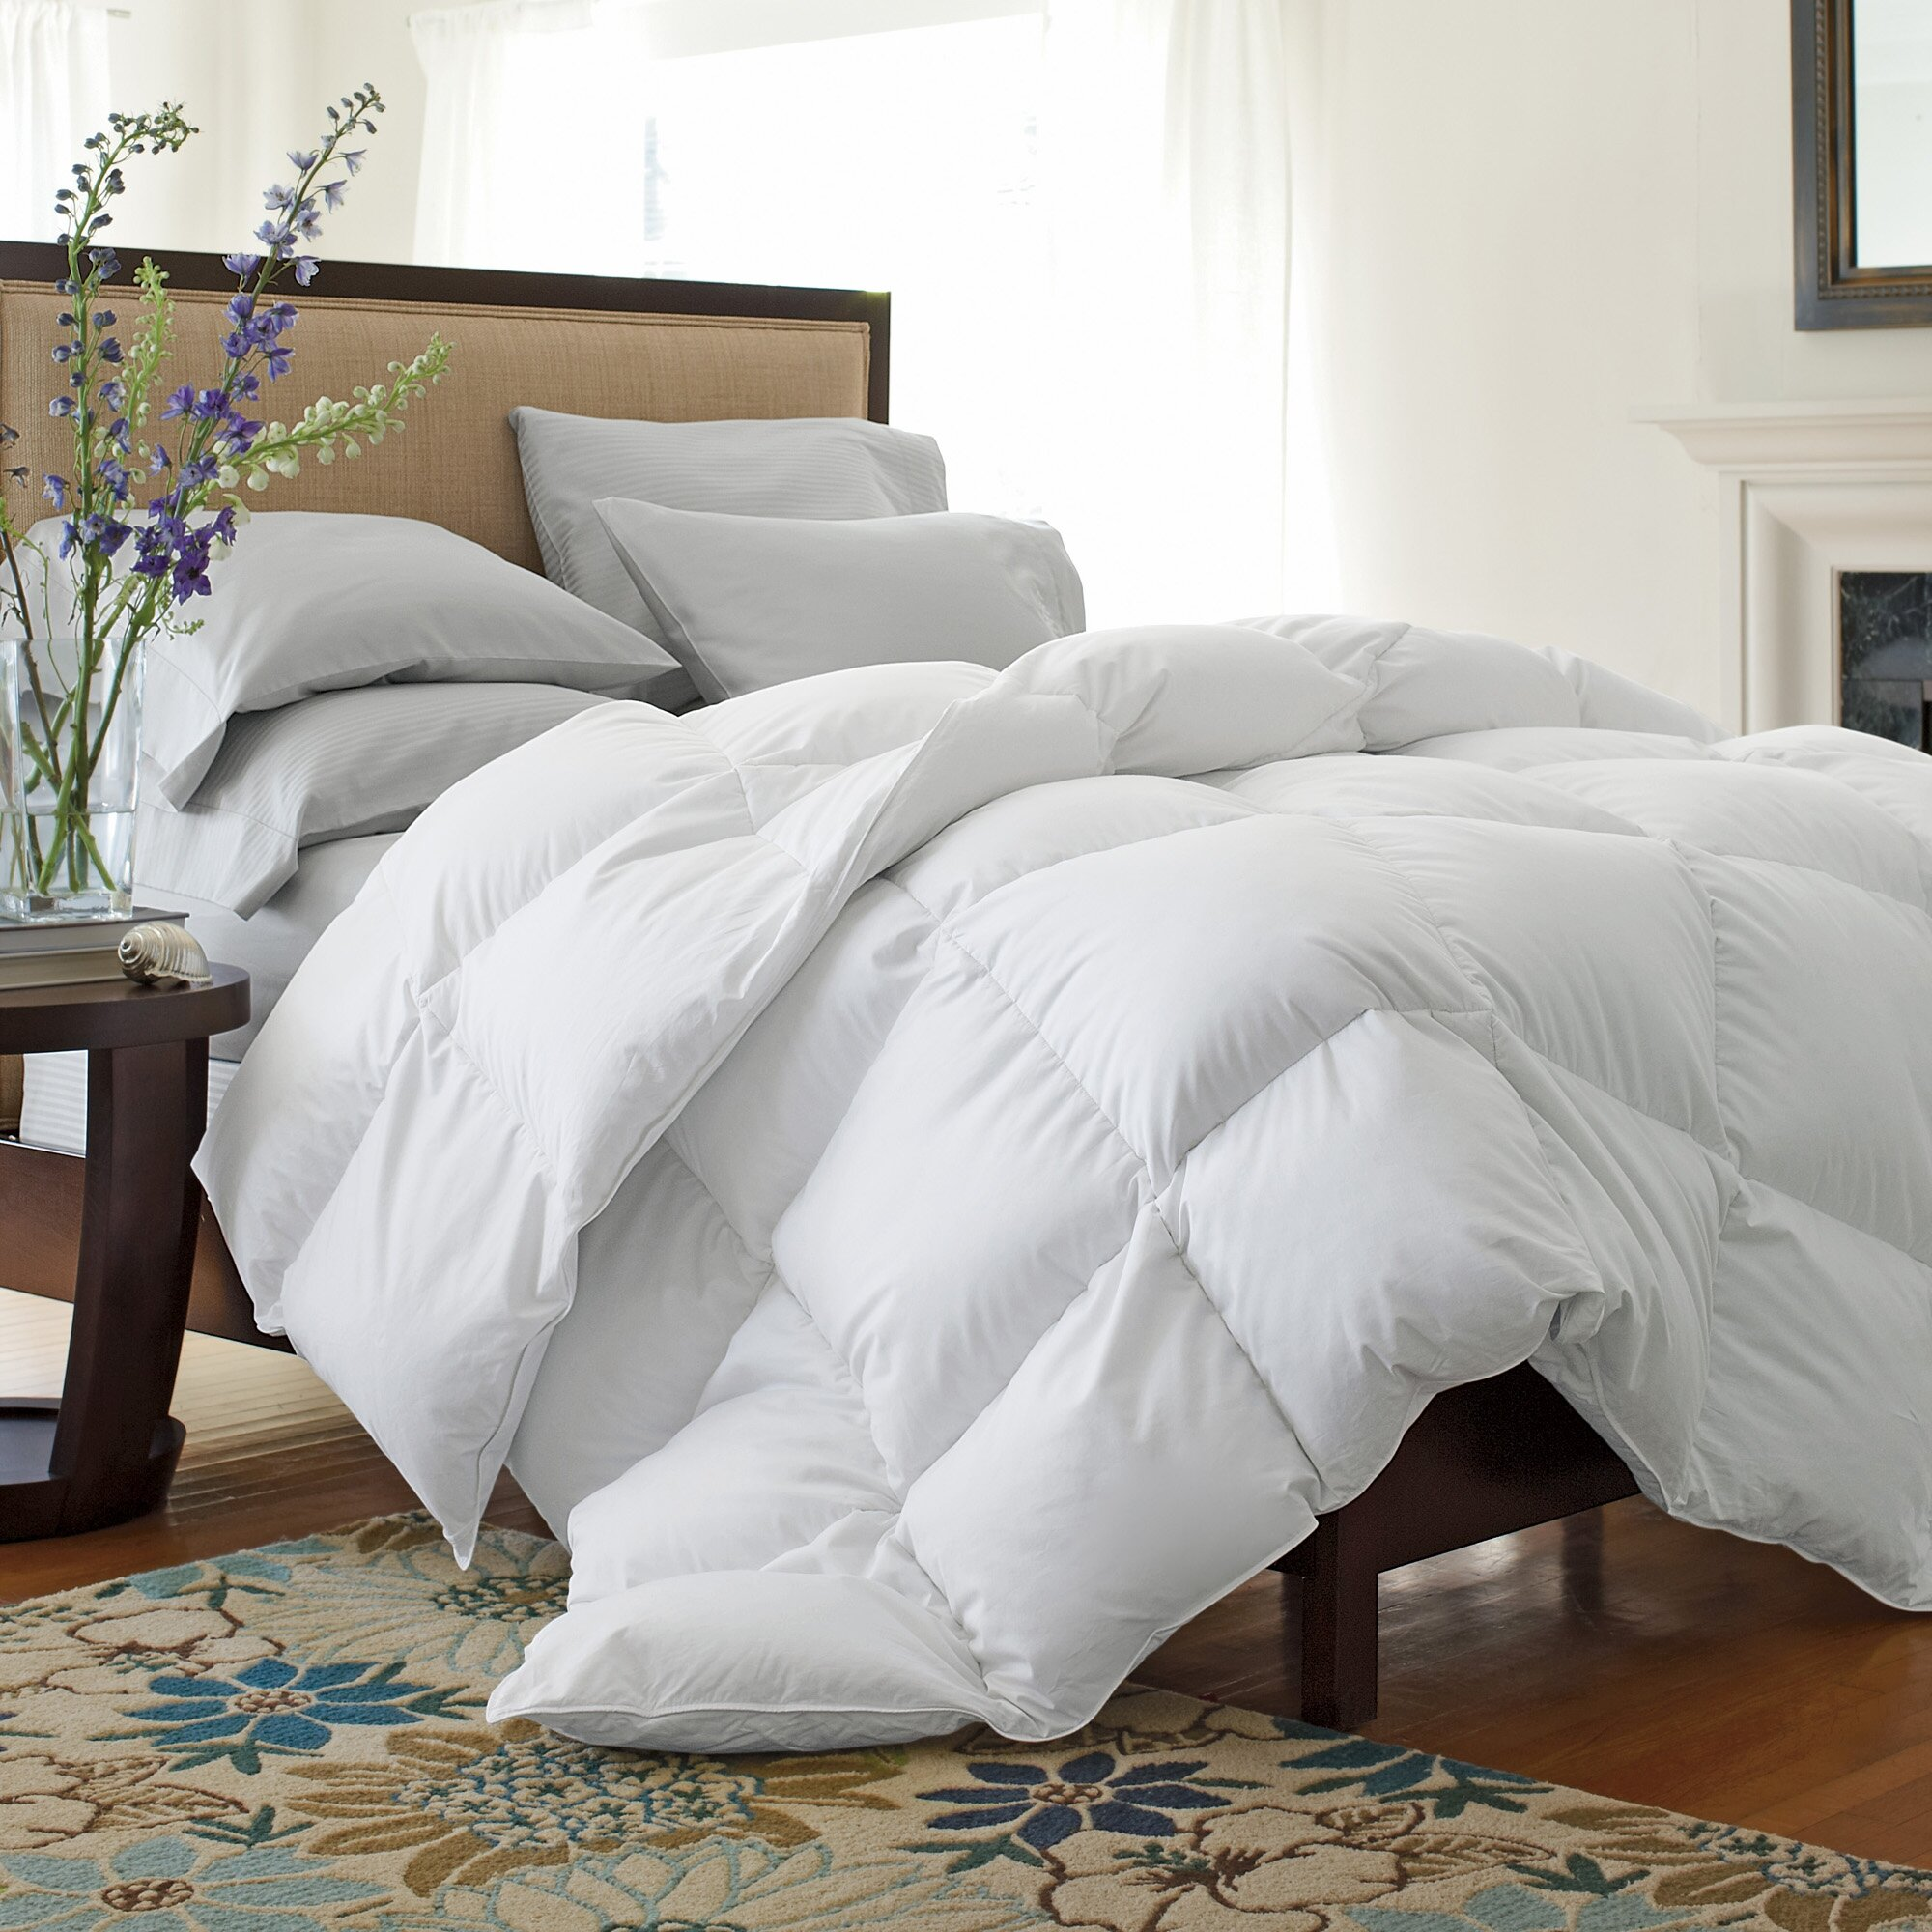 northern sets for set jacquard com twin comforter bedding n bed summer piece nights ensembles qvc the home reversible c